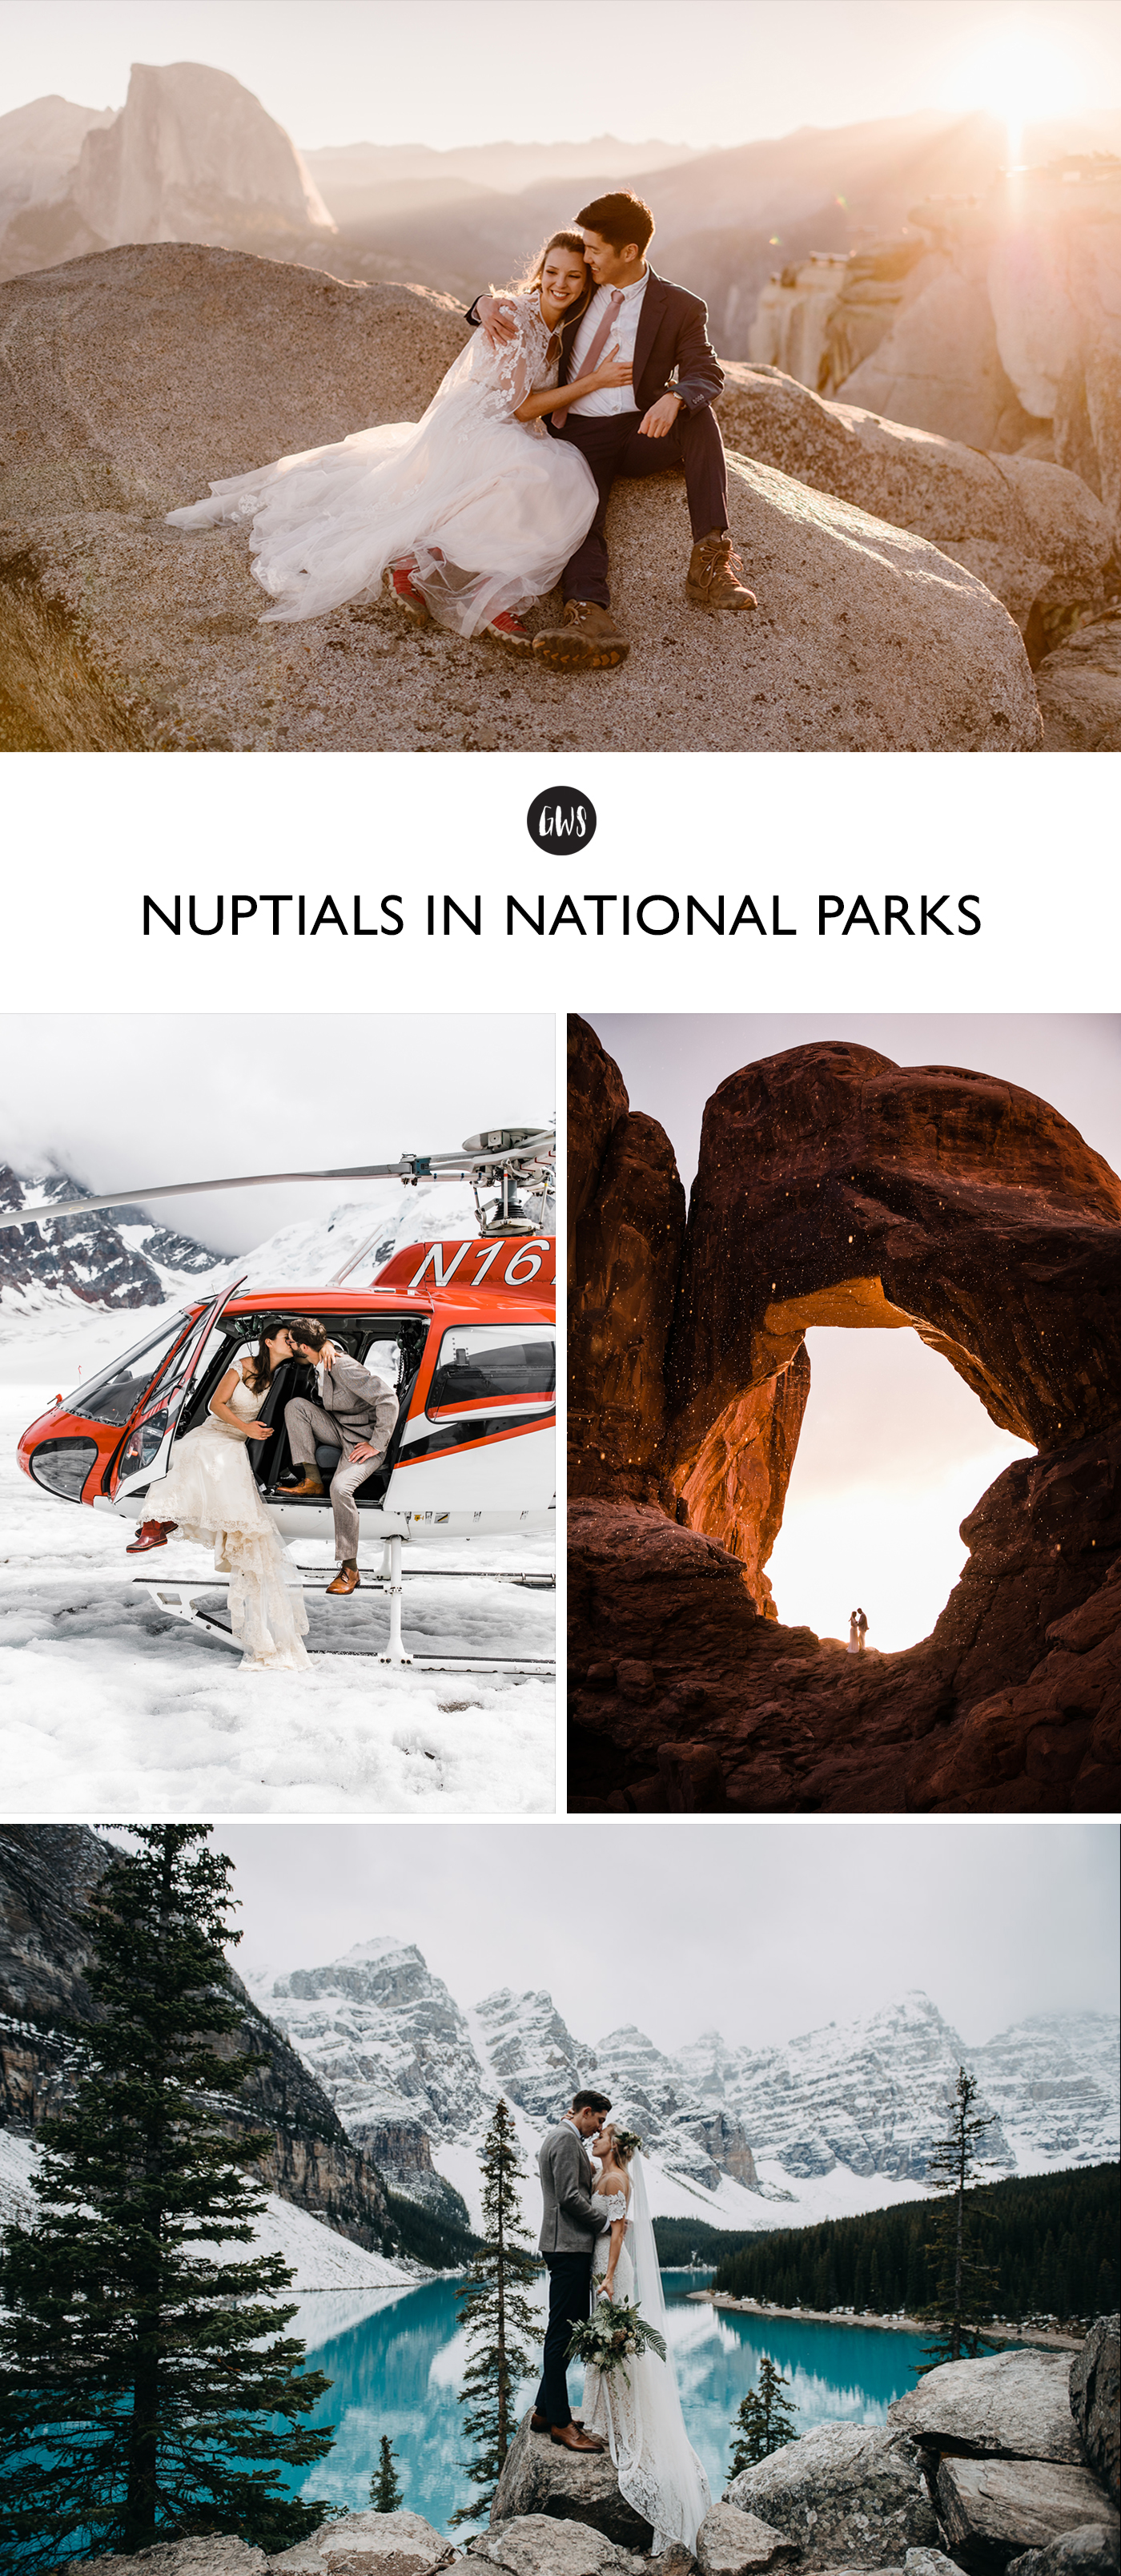 Nuptials in National Parks